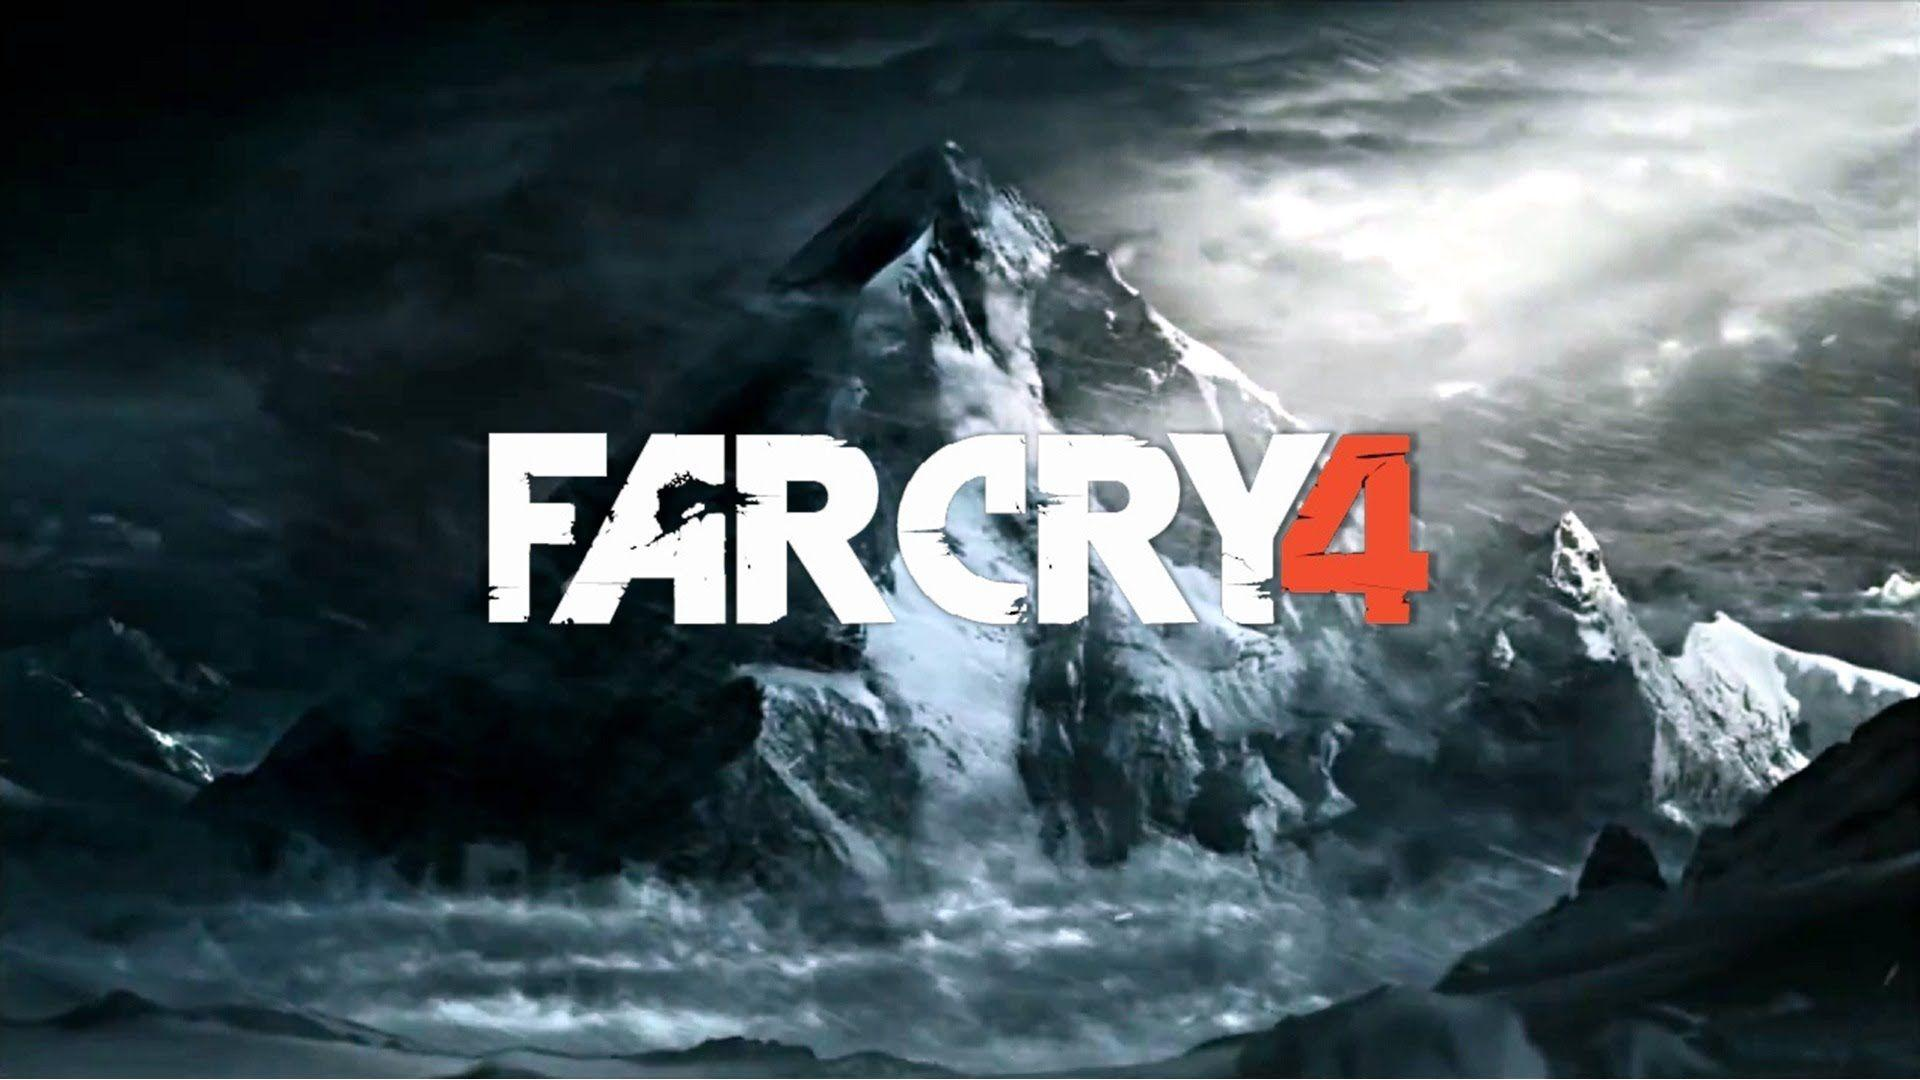 far cry 4 wallpapers wallpaper cave. Black Bedroom Furniture Sets. Home Design Ideas